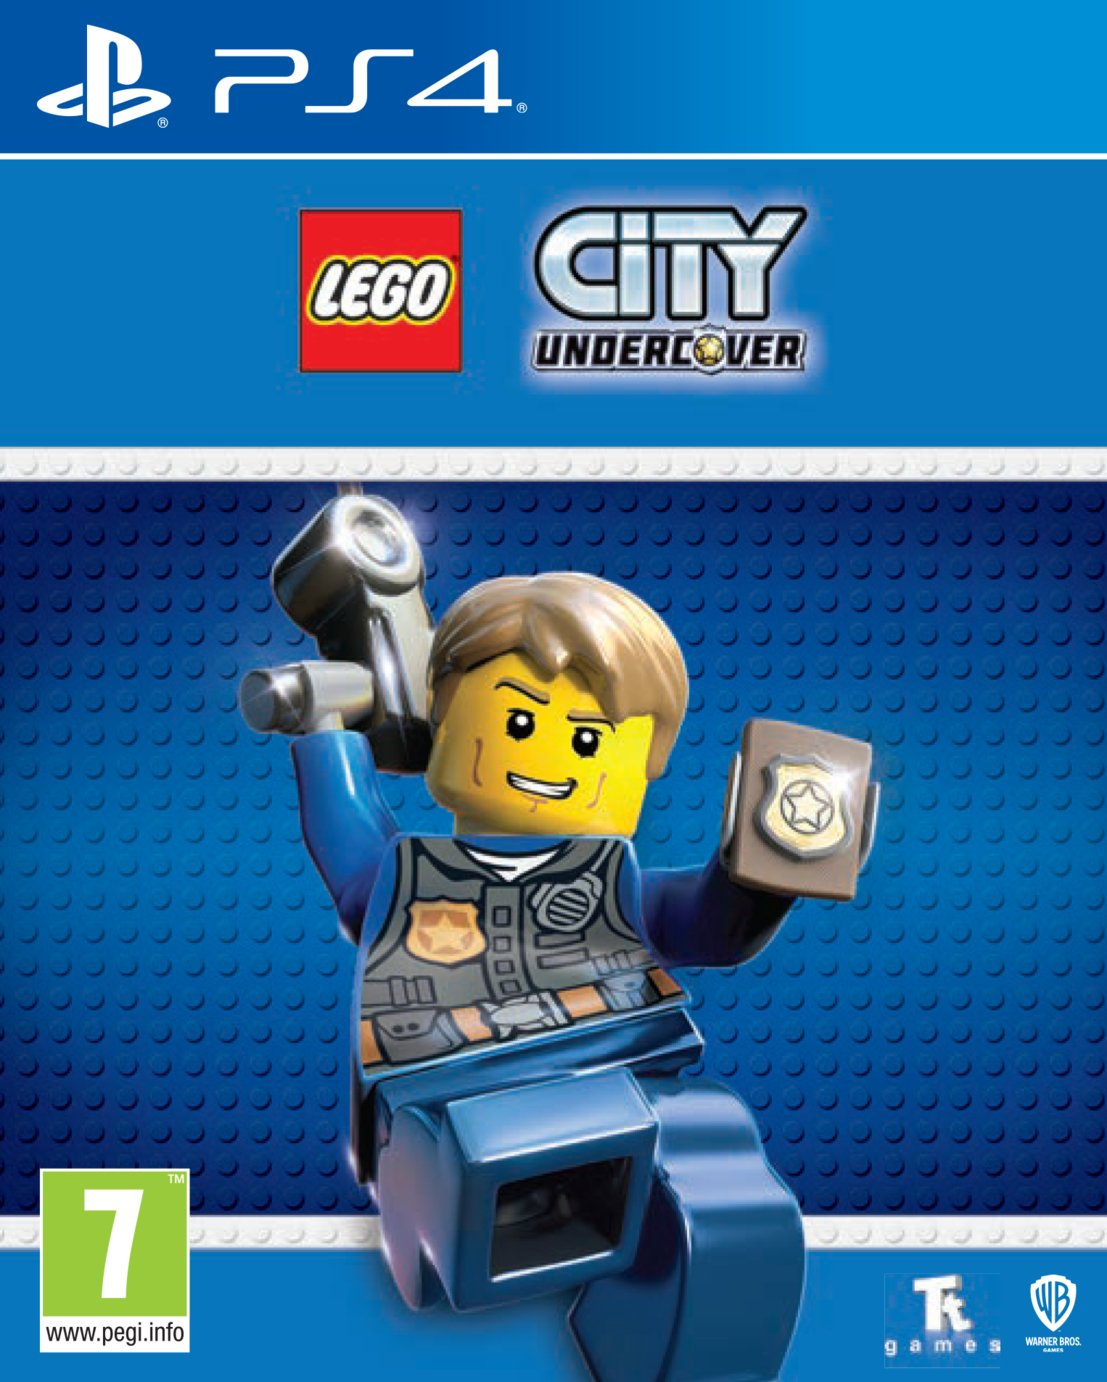 LEGO City Undercover PS4 Game review